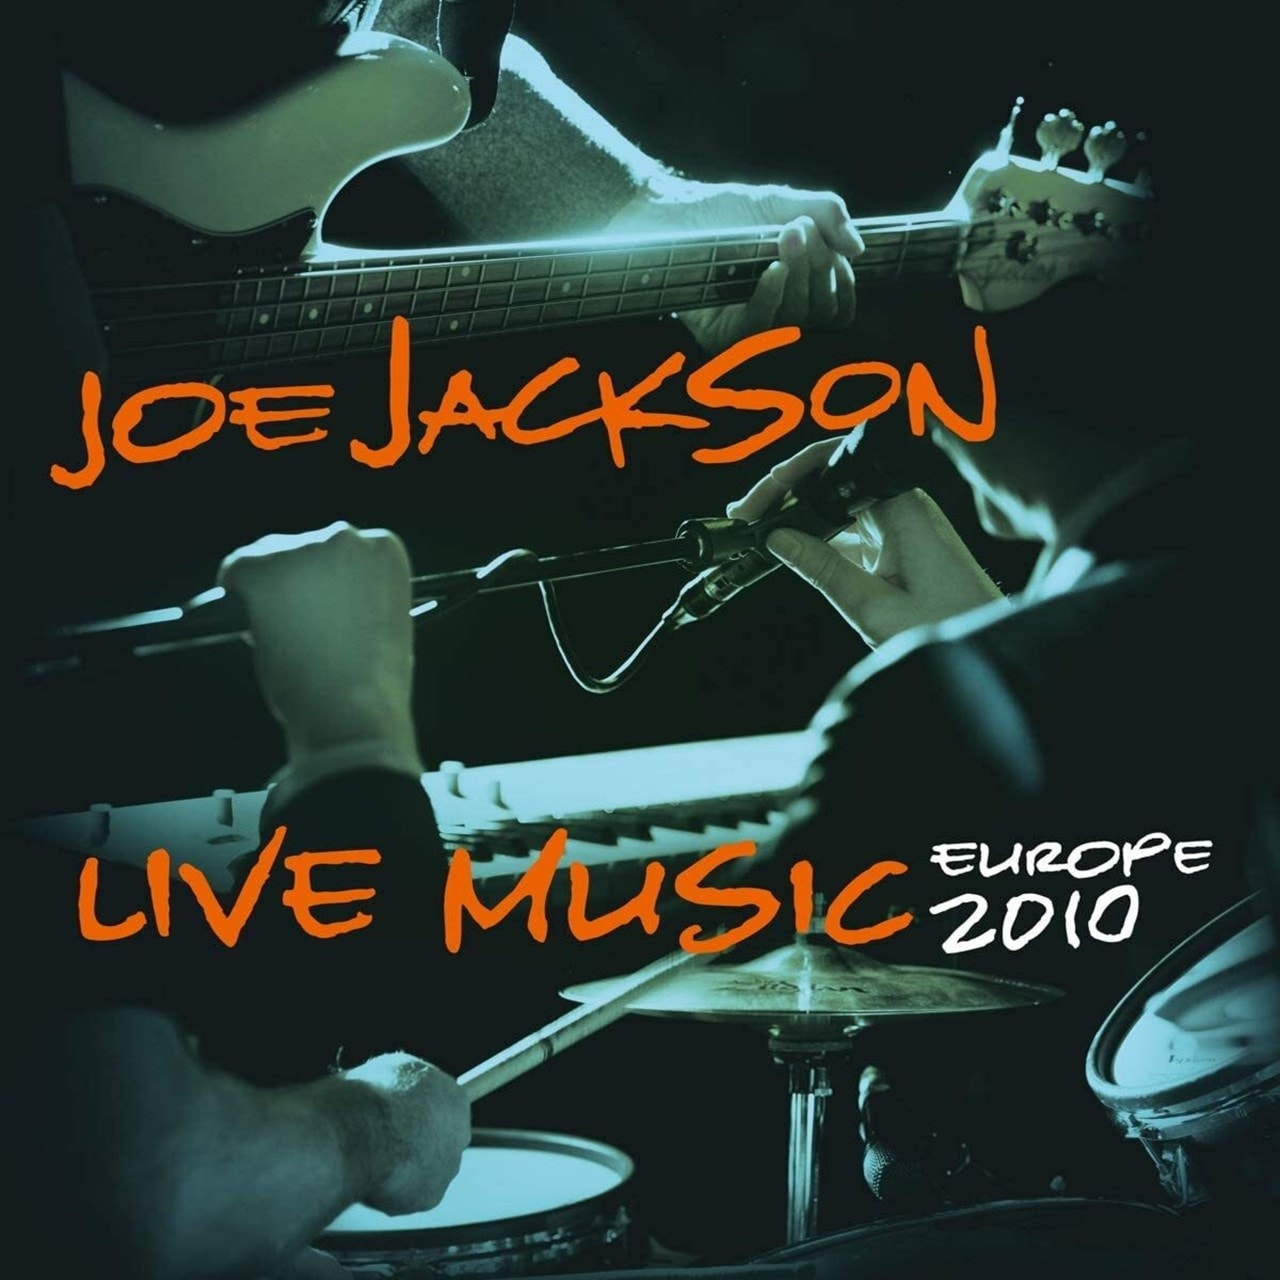 Live Music: Europe 2010 - 1